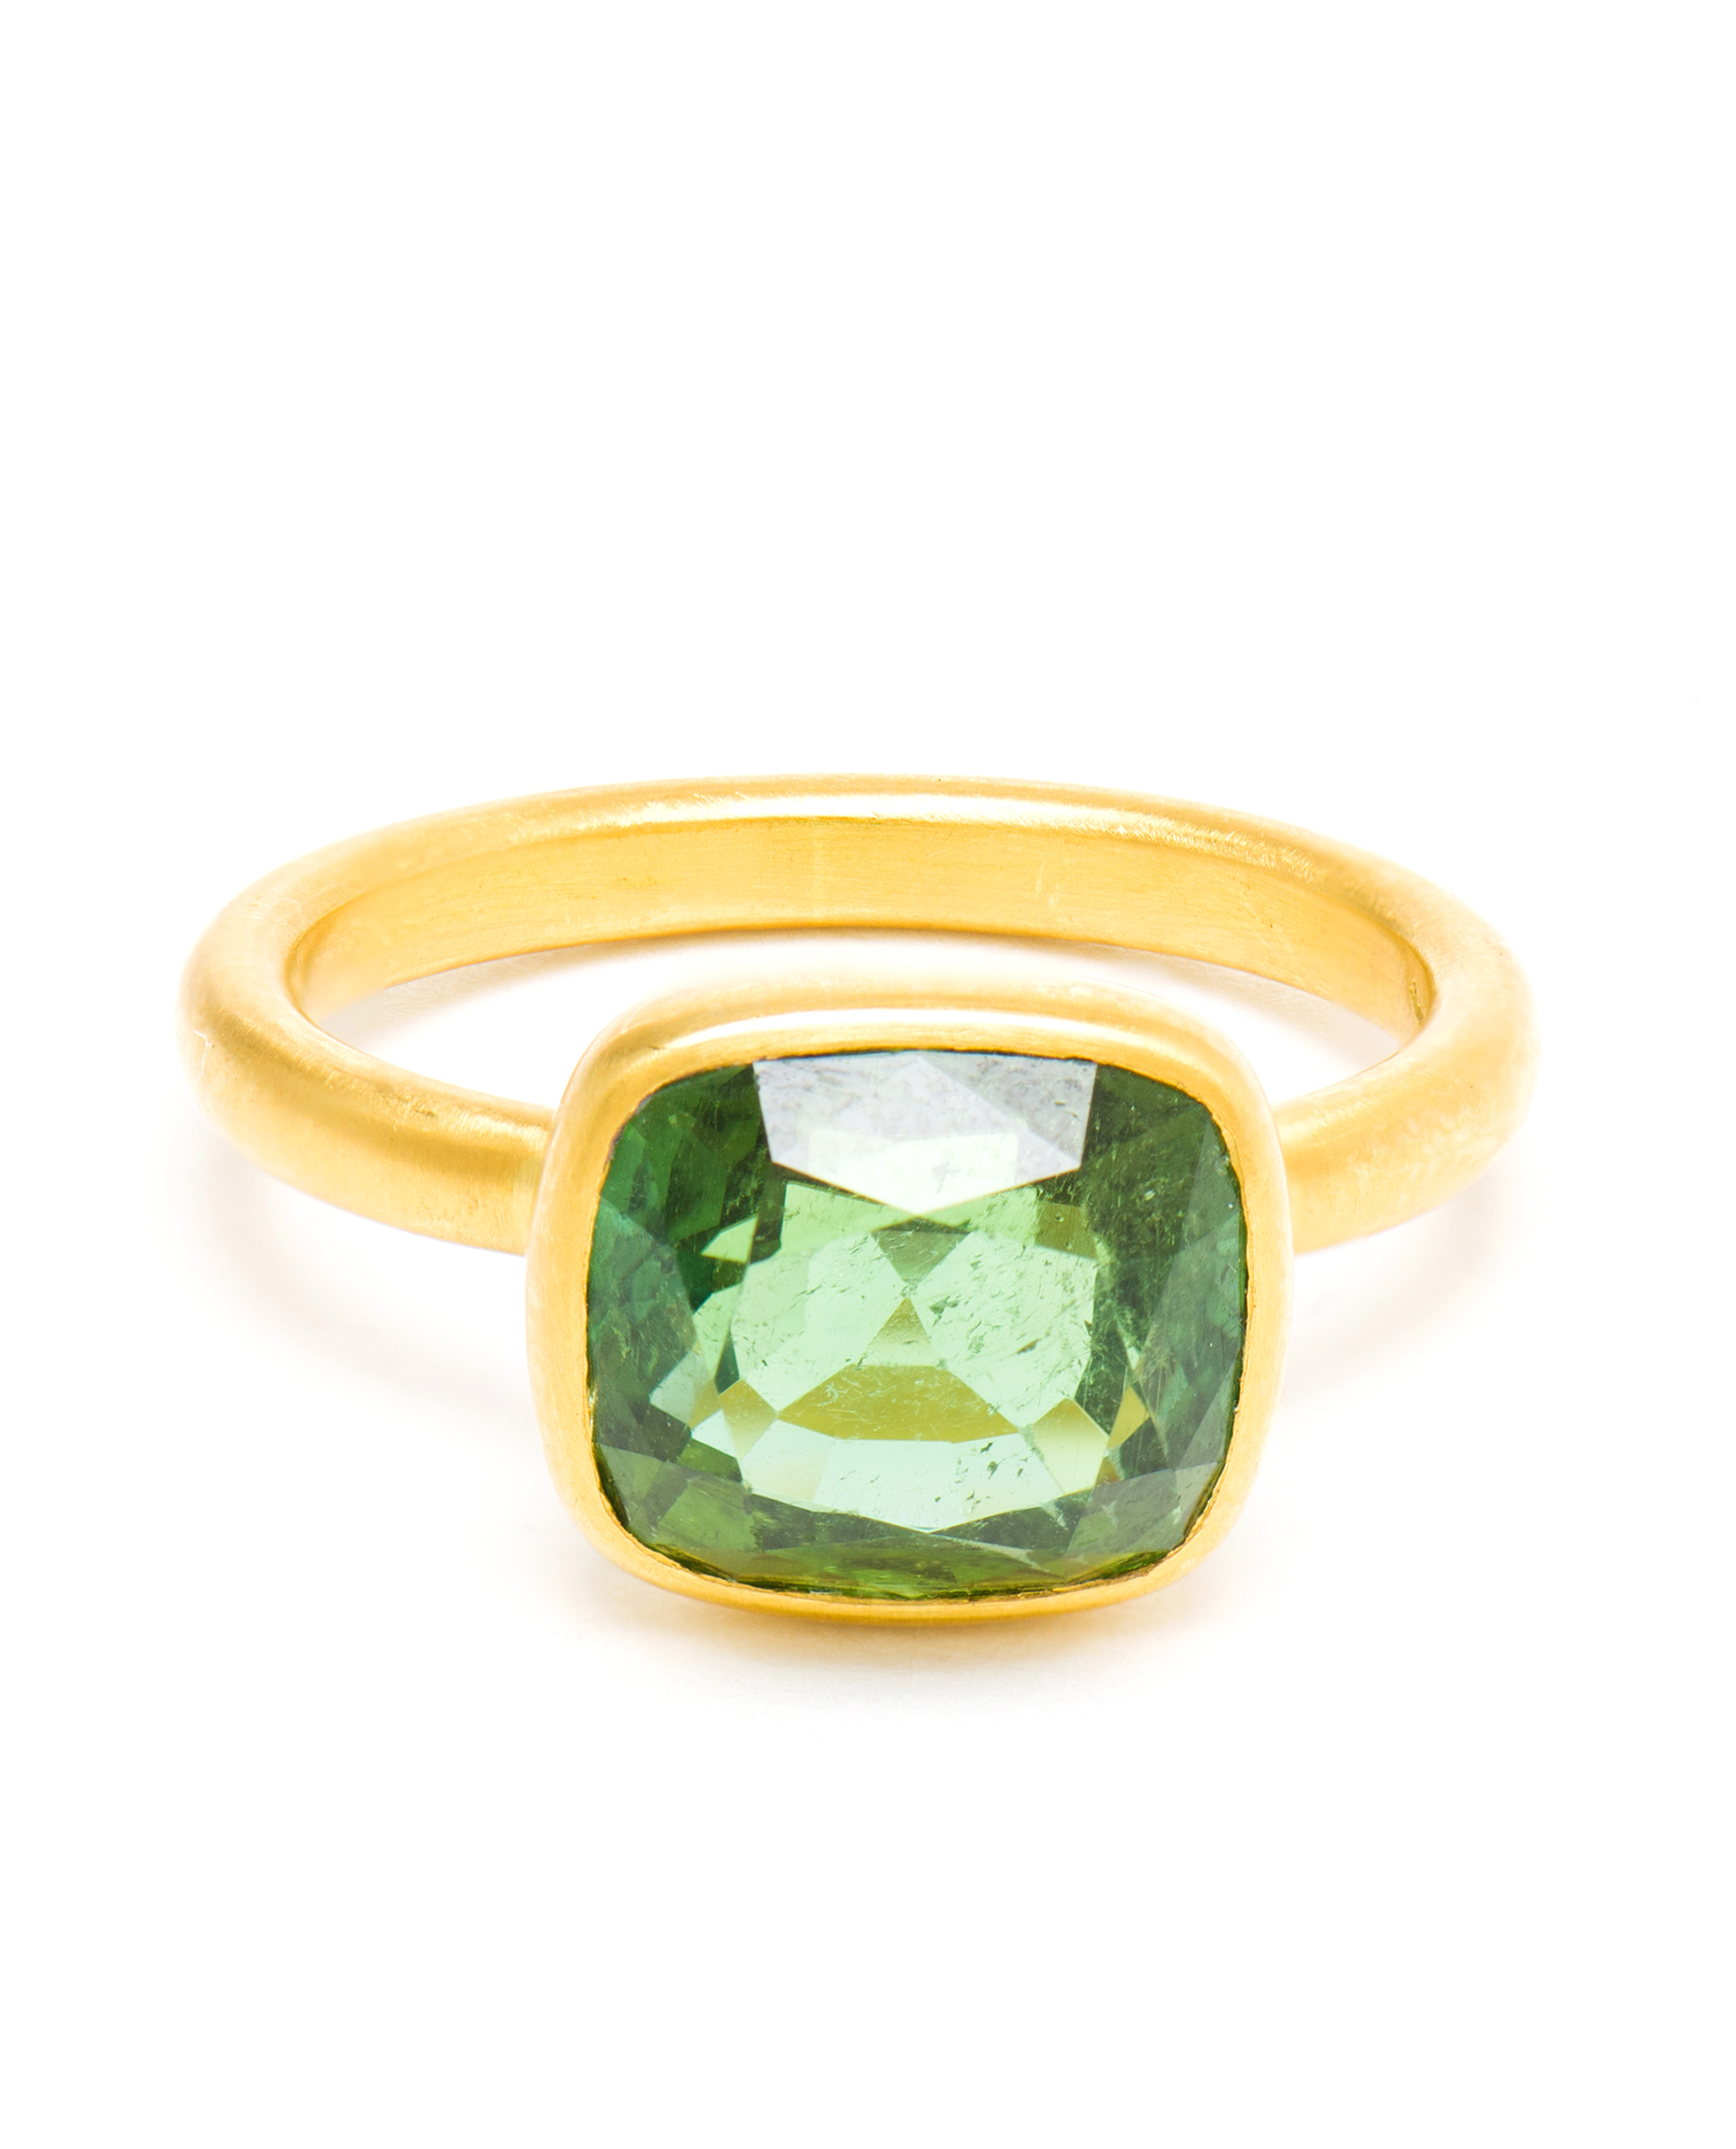 very a this gold ring yellow has carat estate fine green three of weight vintage total rings size in img diamond price approx the detail is tourmaline stone